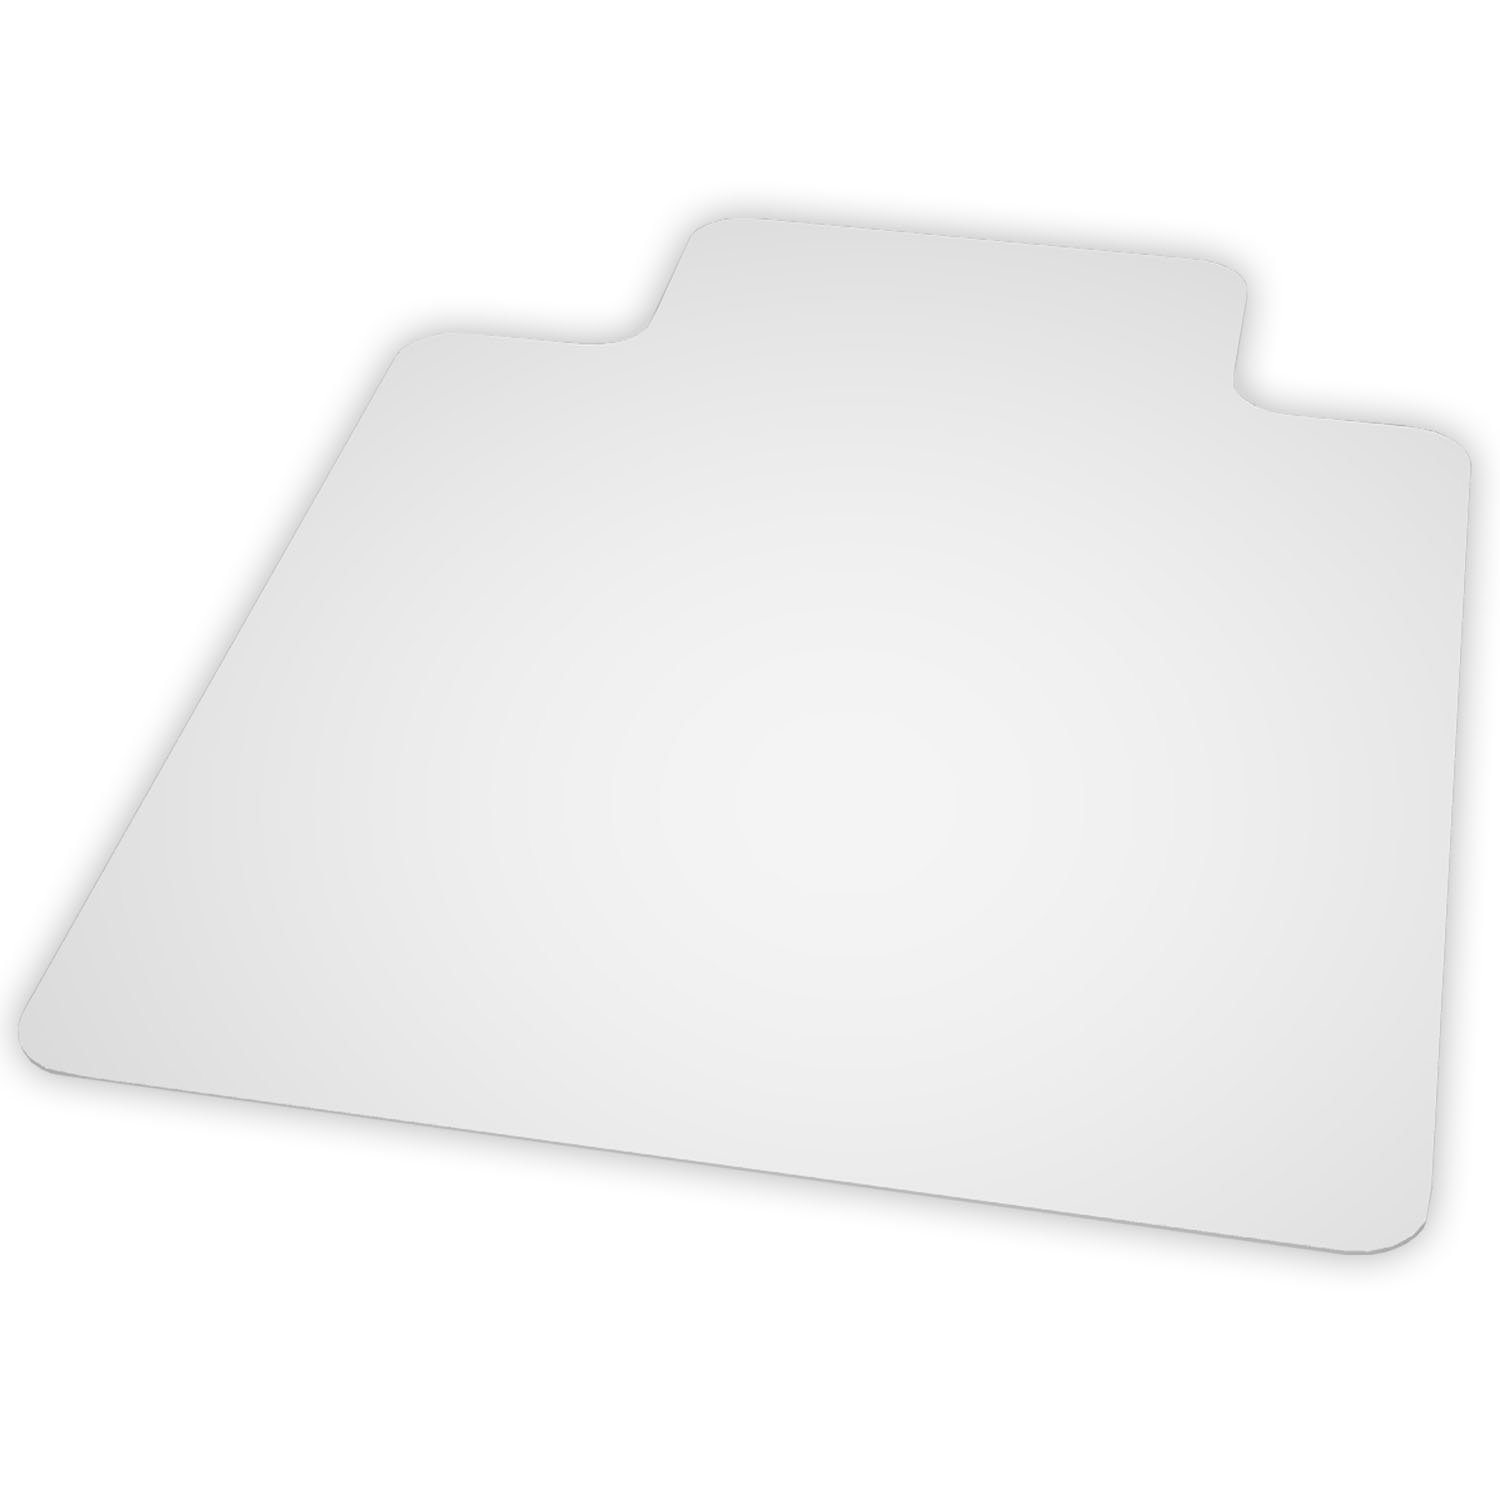 ES Robbins EverLife Hard Floor Lipped Vinyl Chair Mat, 36 by 48-Inch, Clear 131115